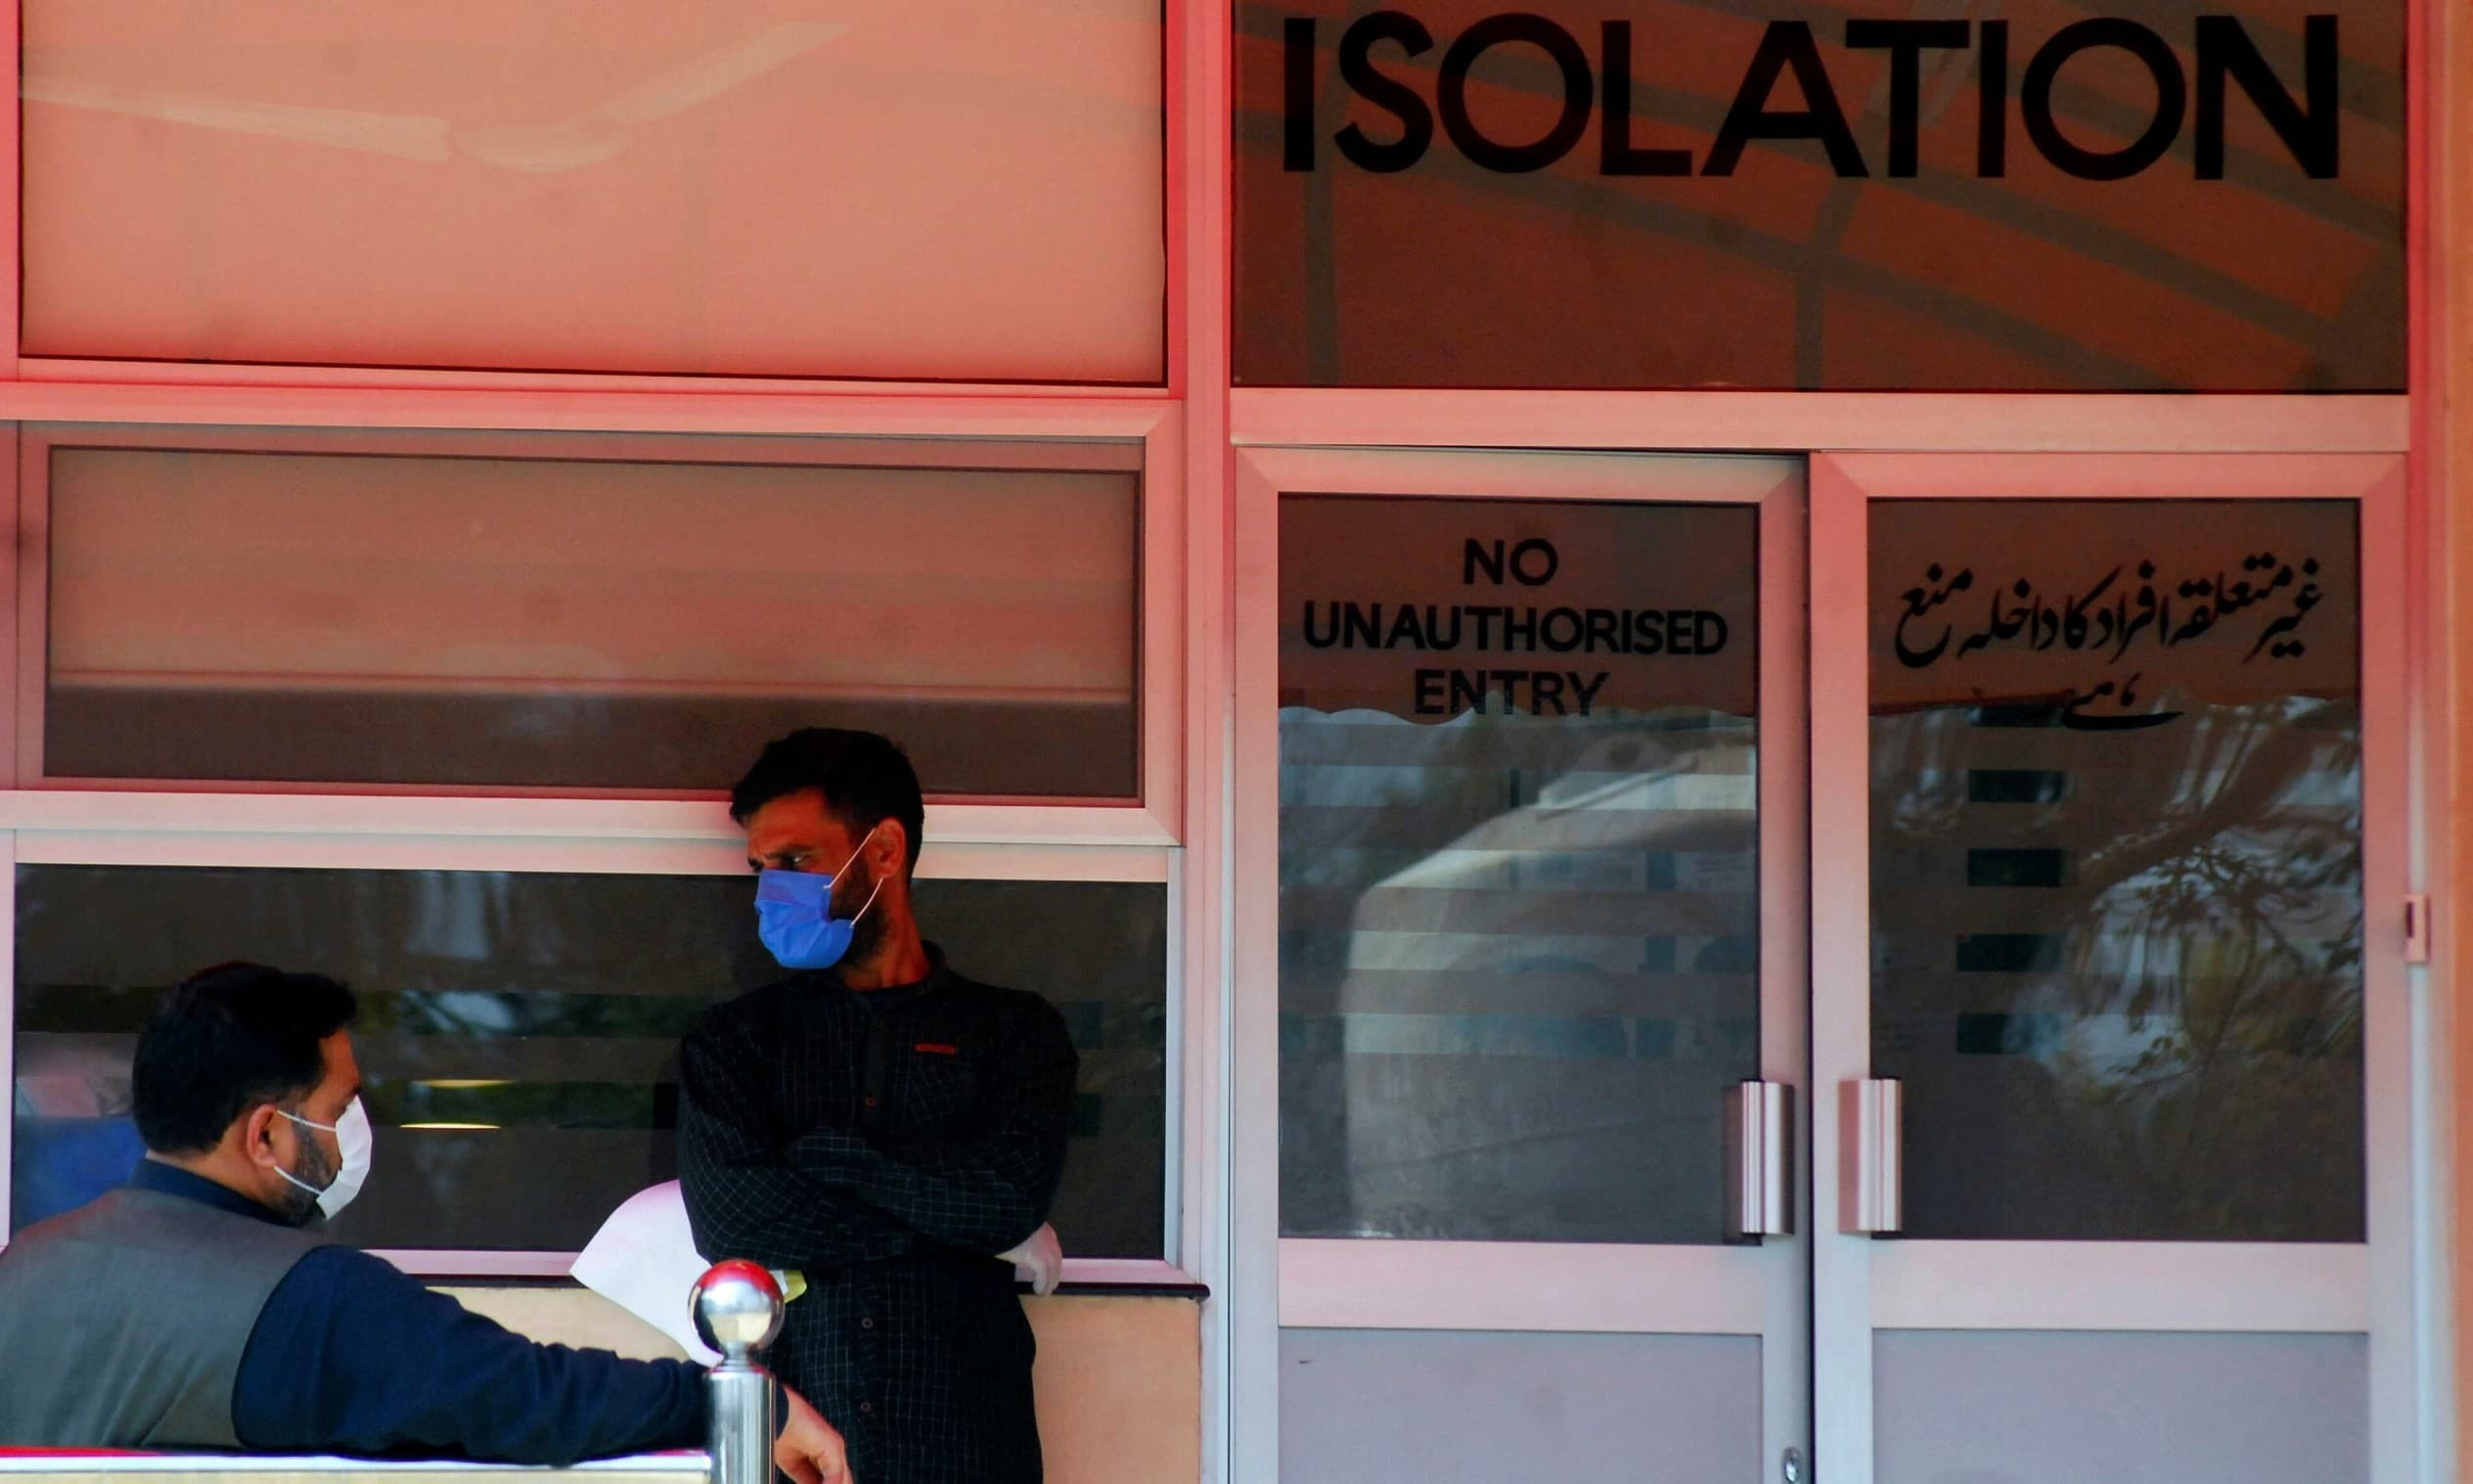 Men wear protective masks as a preventive measure against coronavirus, as they stand outside the Isolation Ward at the Pakistan Institute of Medical Sciences (Pims) in Islamabad, March 15, 2020. — Reuters